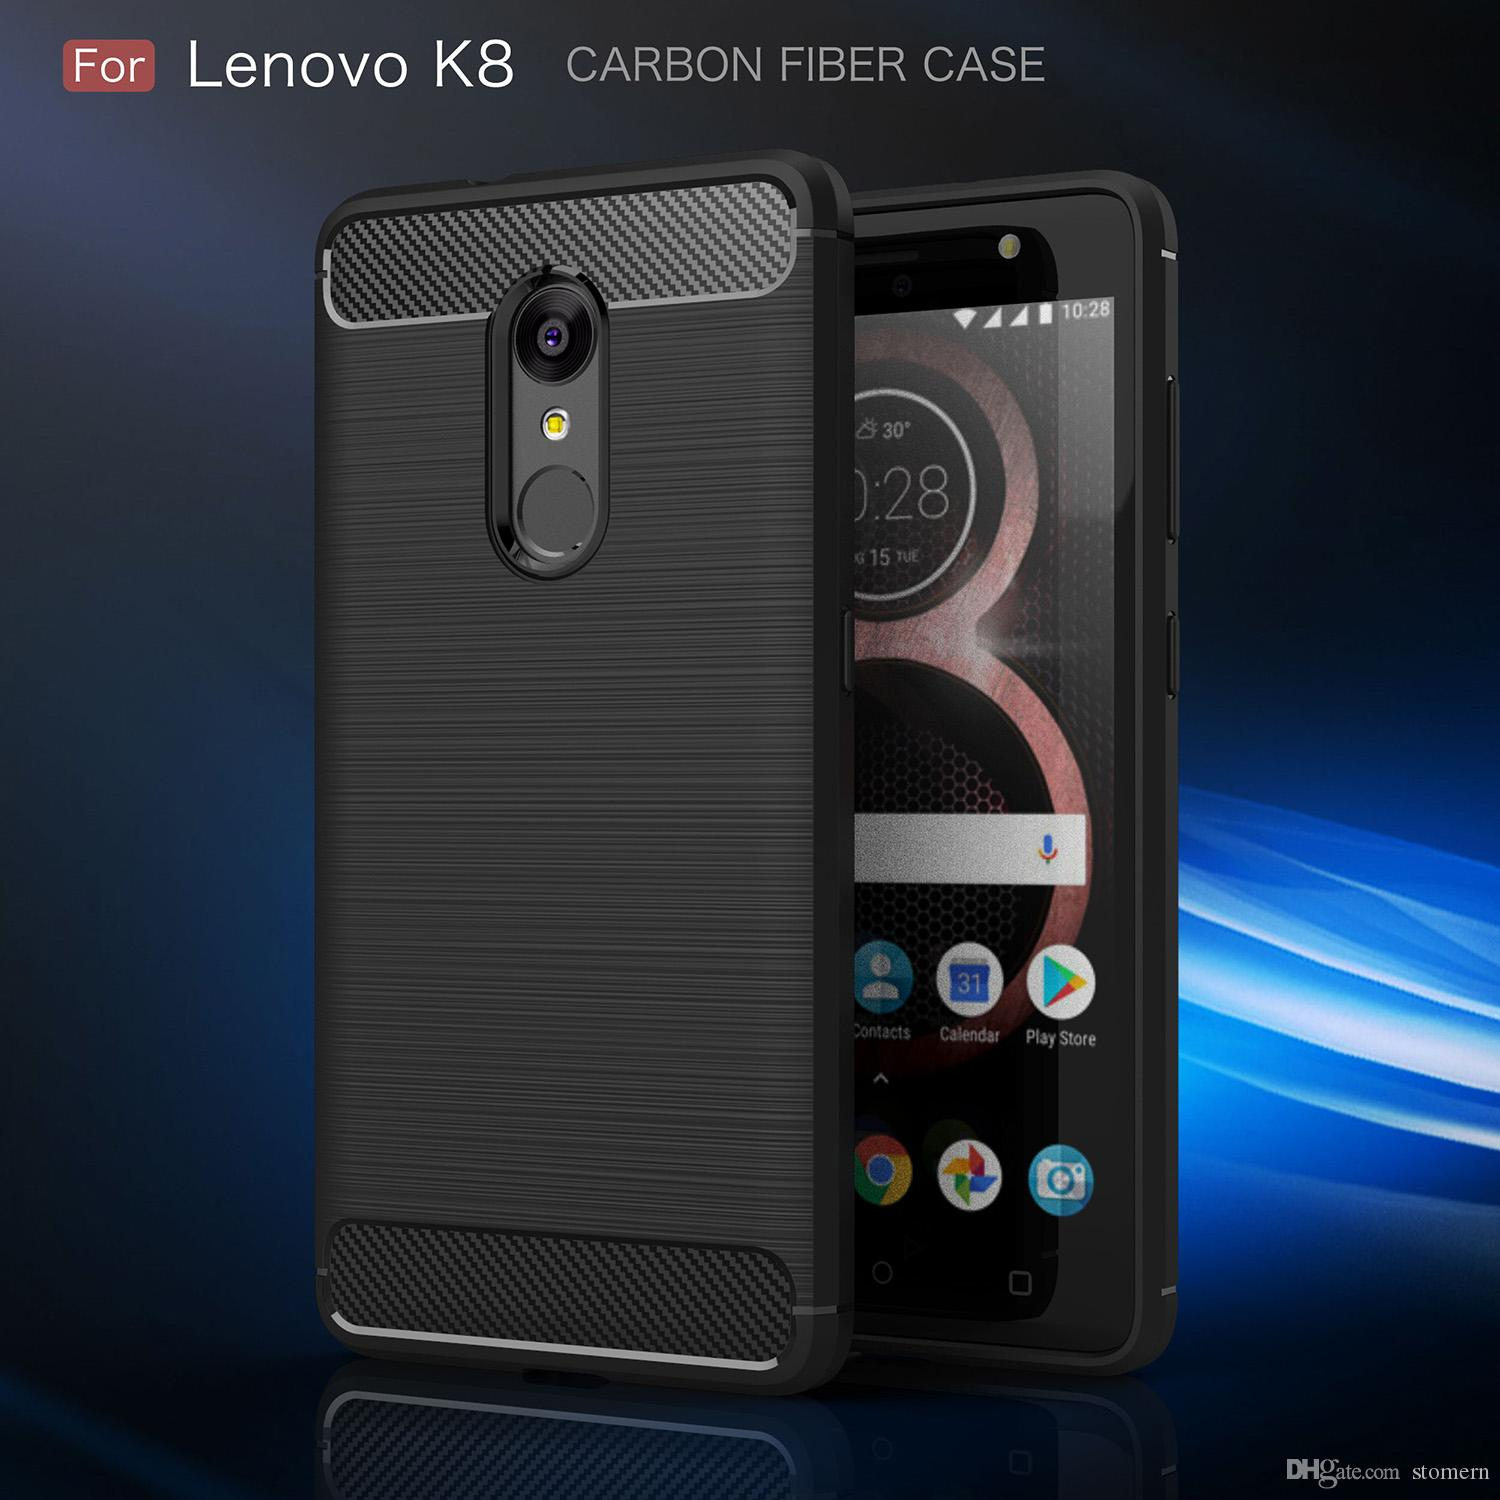 on sale 67b7a da94a Carbon Fiber Case For Lenovo K8 K8 Note Luxury Texture Brushed Silicone  Soft Rubber Back Cover Slim Armor Rugged Skin